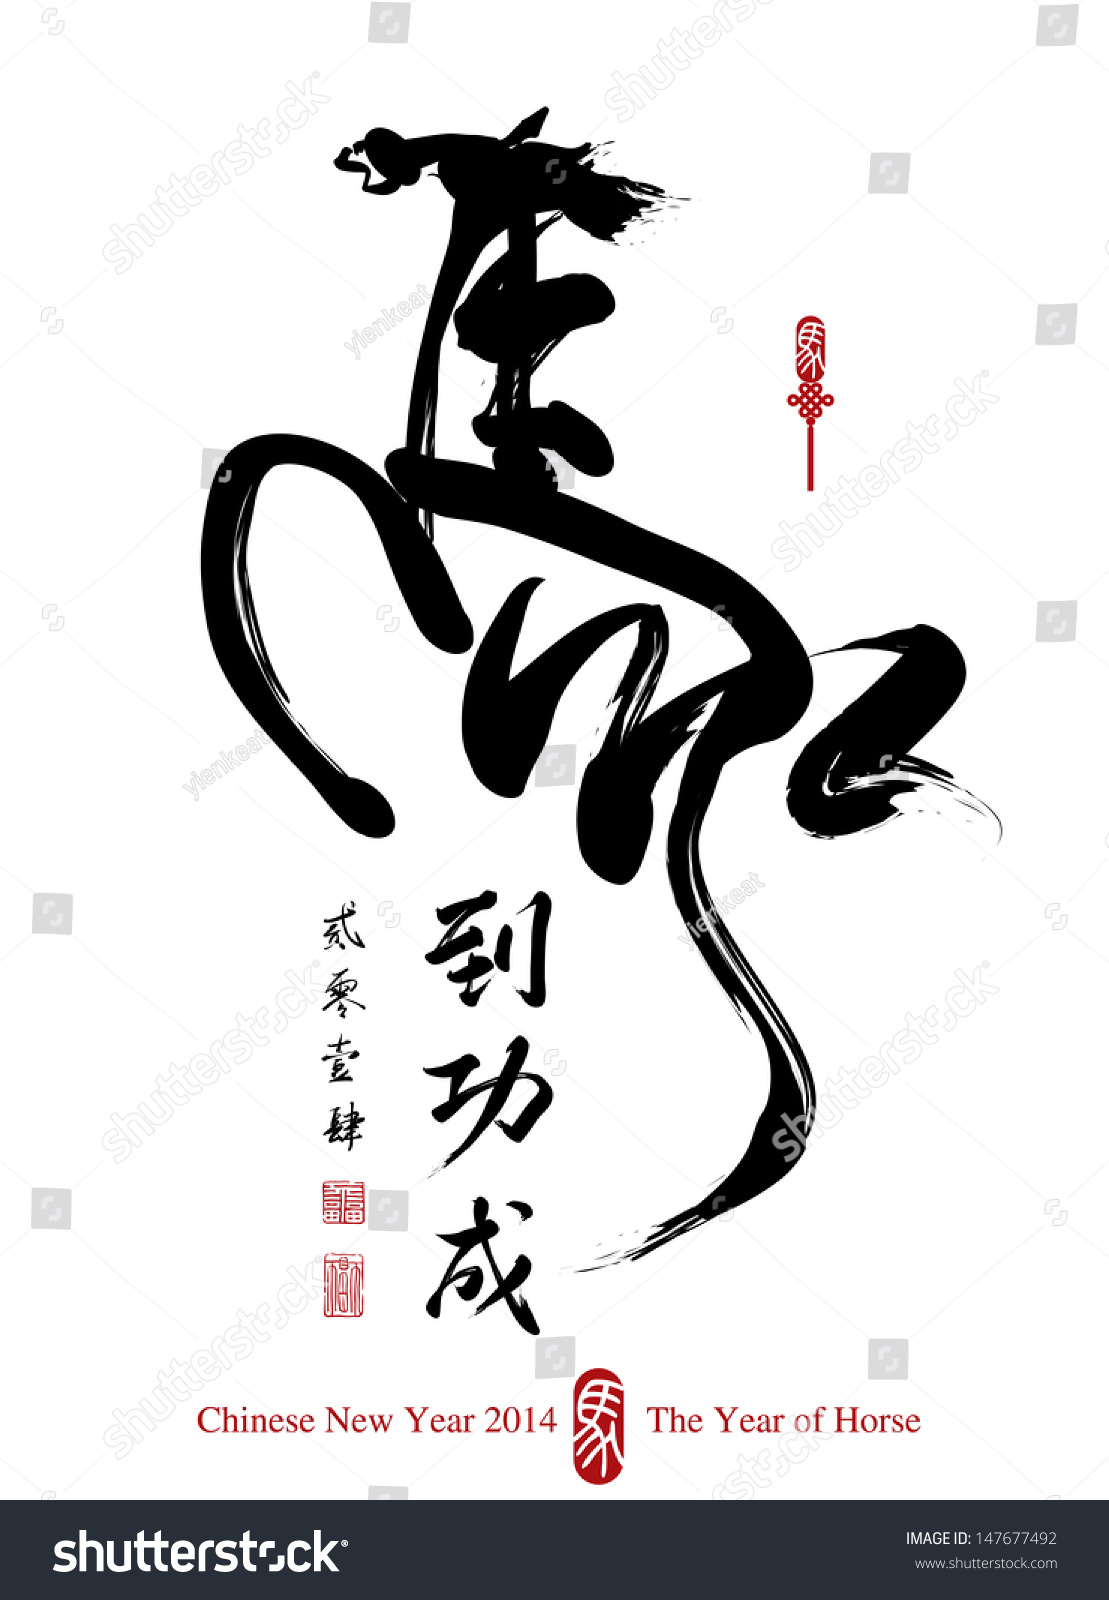 Horse Calligraphy Chinese New Year 2014 Stock Vector